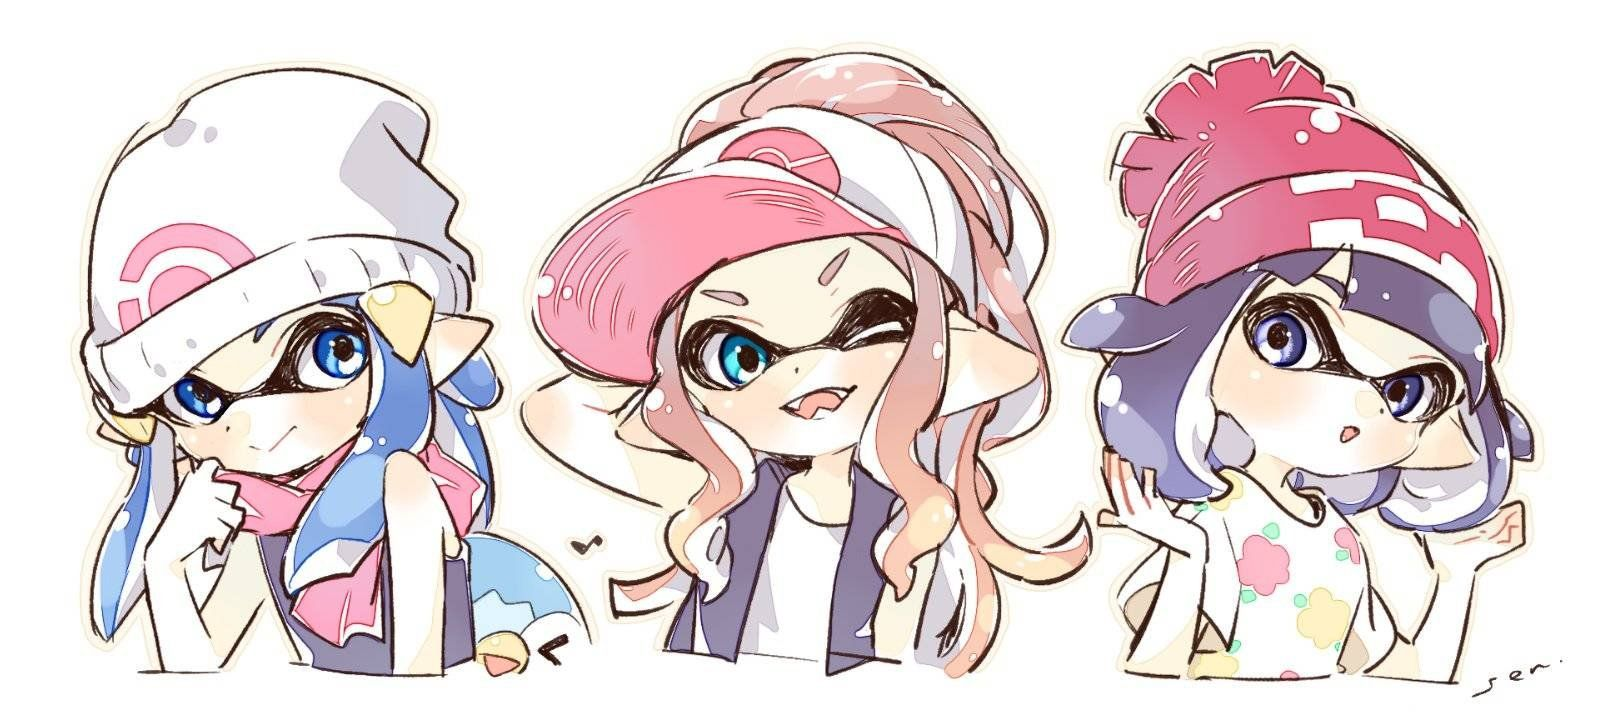 I never knew how much I wanted this to happen until now. Splatoon X Pokemon crossover? Hell yeah!